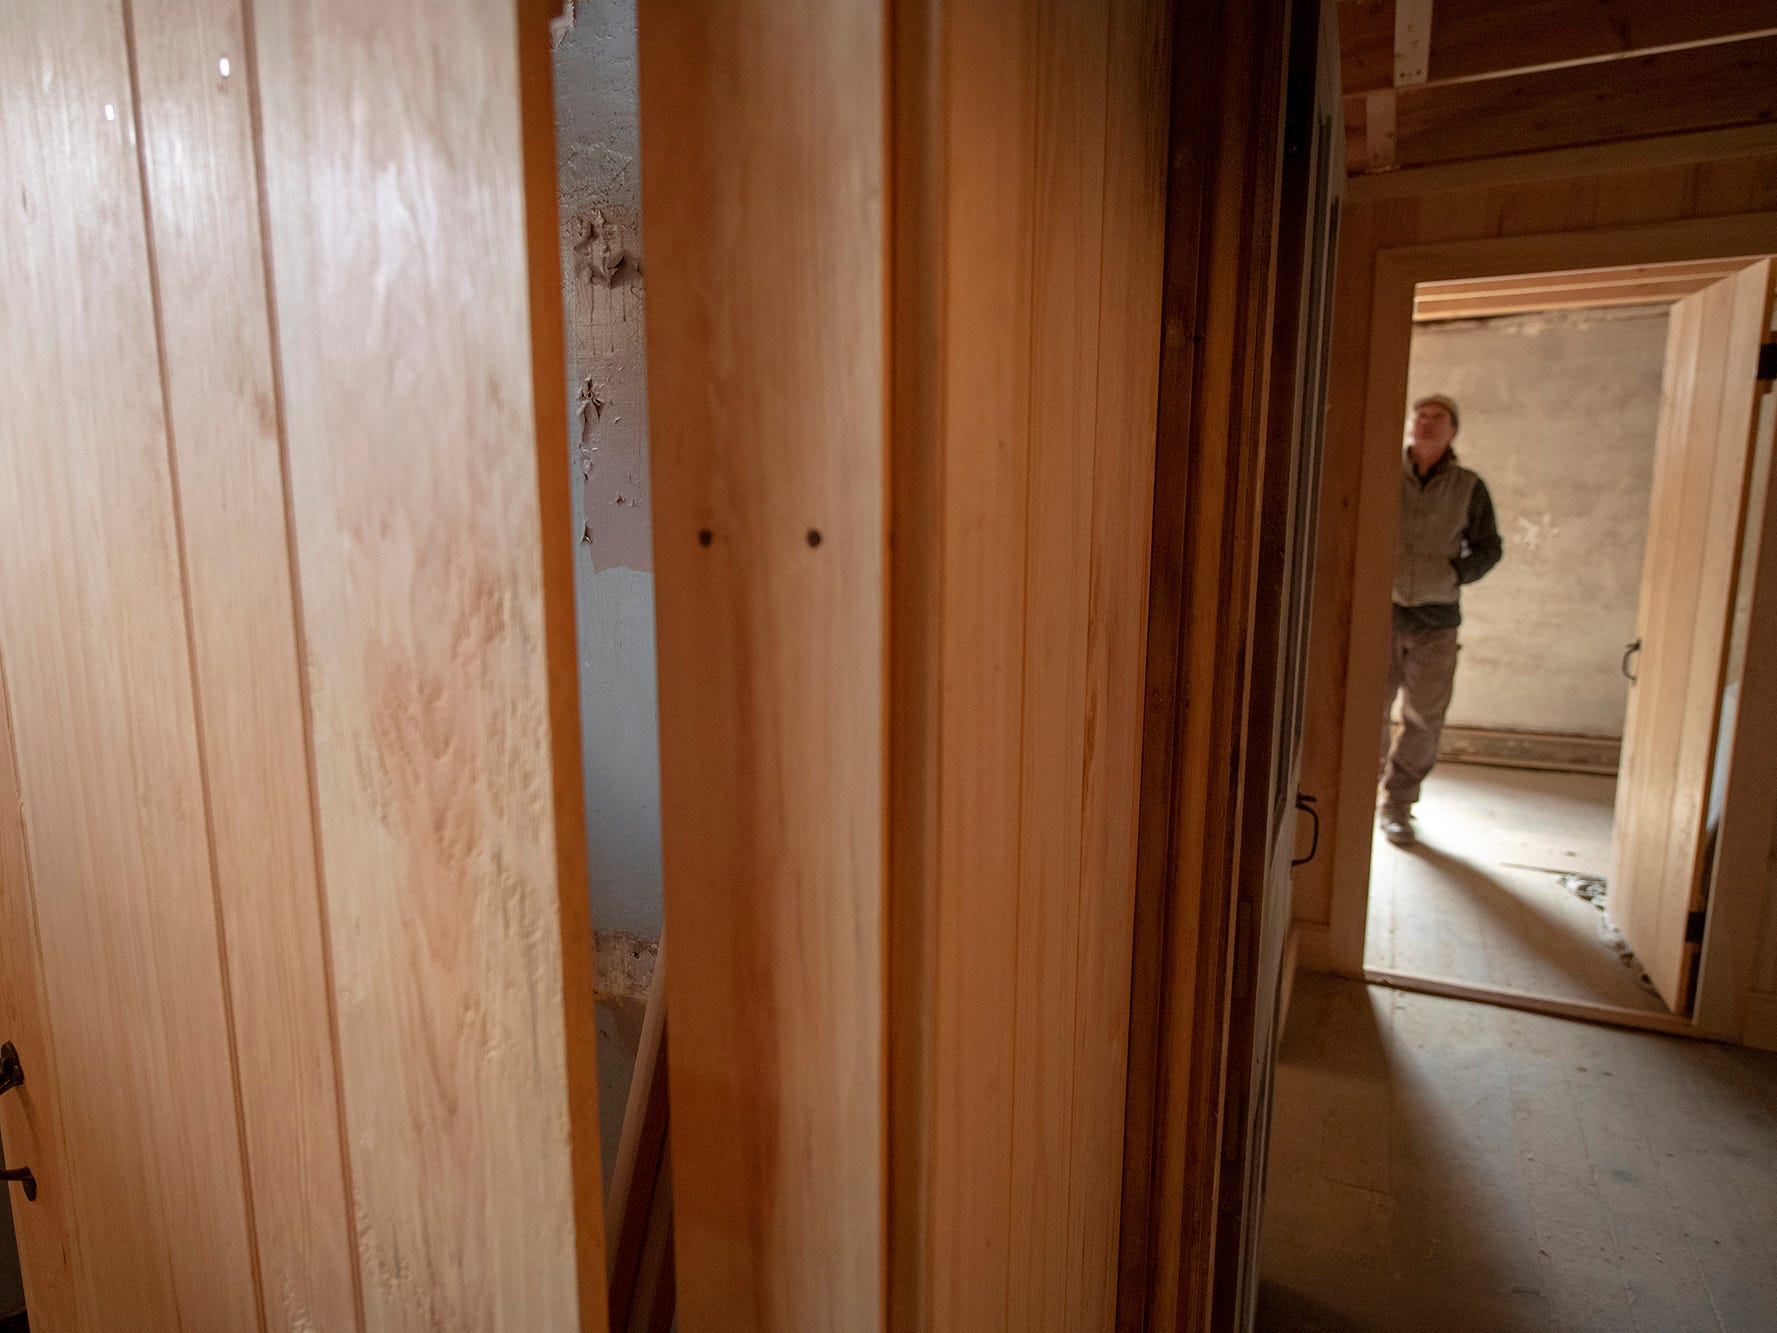 David Keller stands in a room of the stone home in Seitzland Village outside of Glen Rock. He has milled the wood for many of the doors and woodwork using traditional methods that match the vintage of the house.